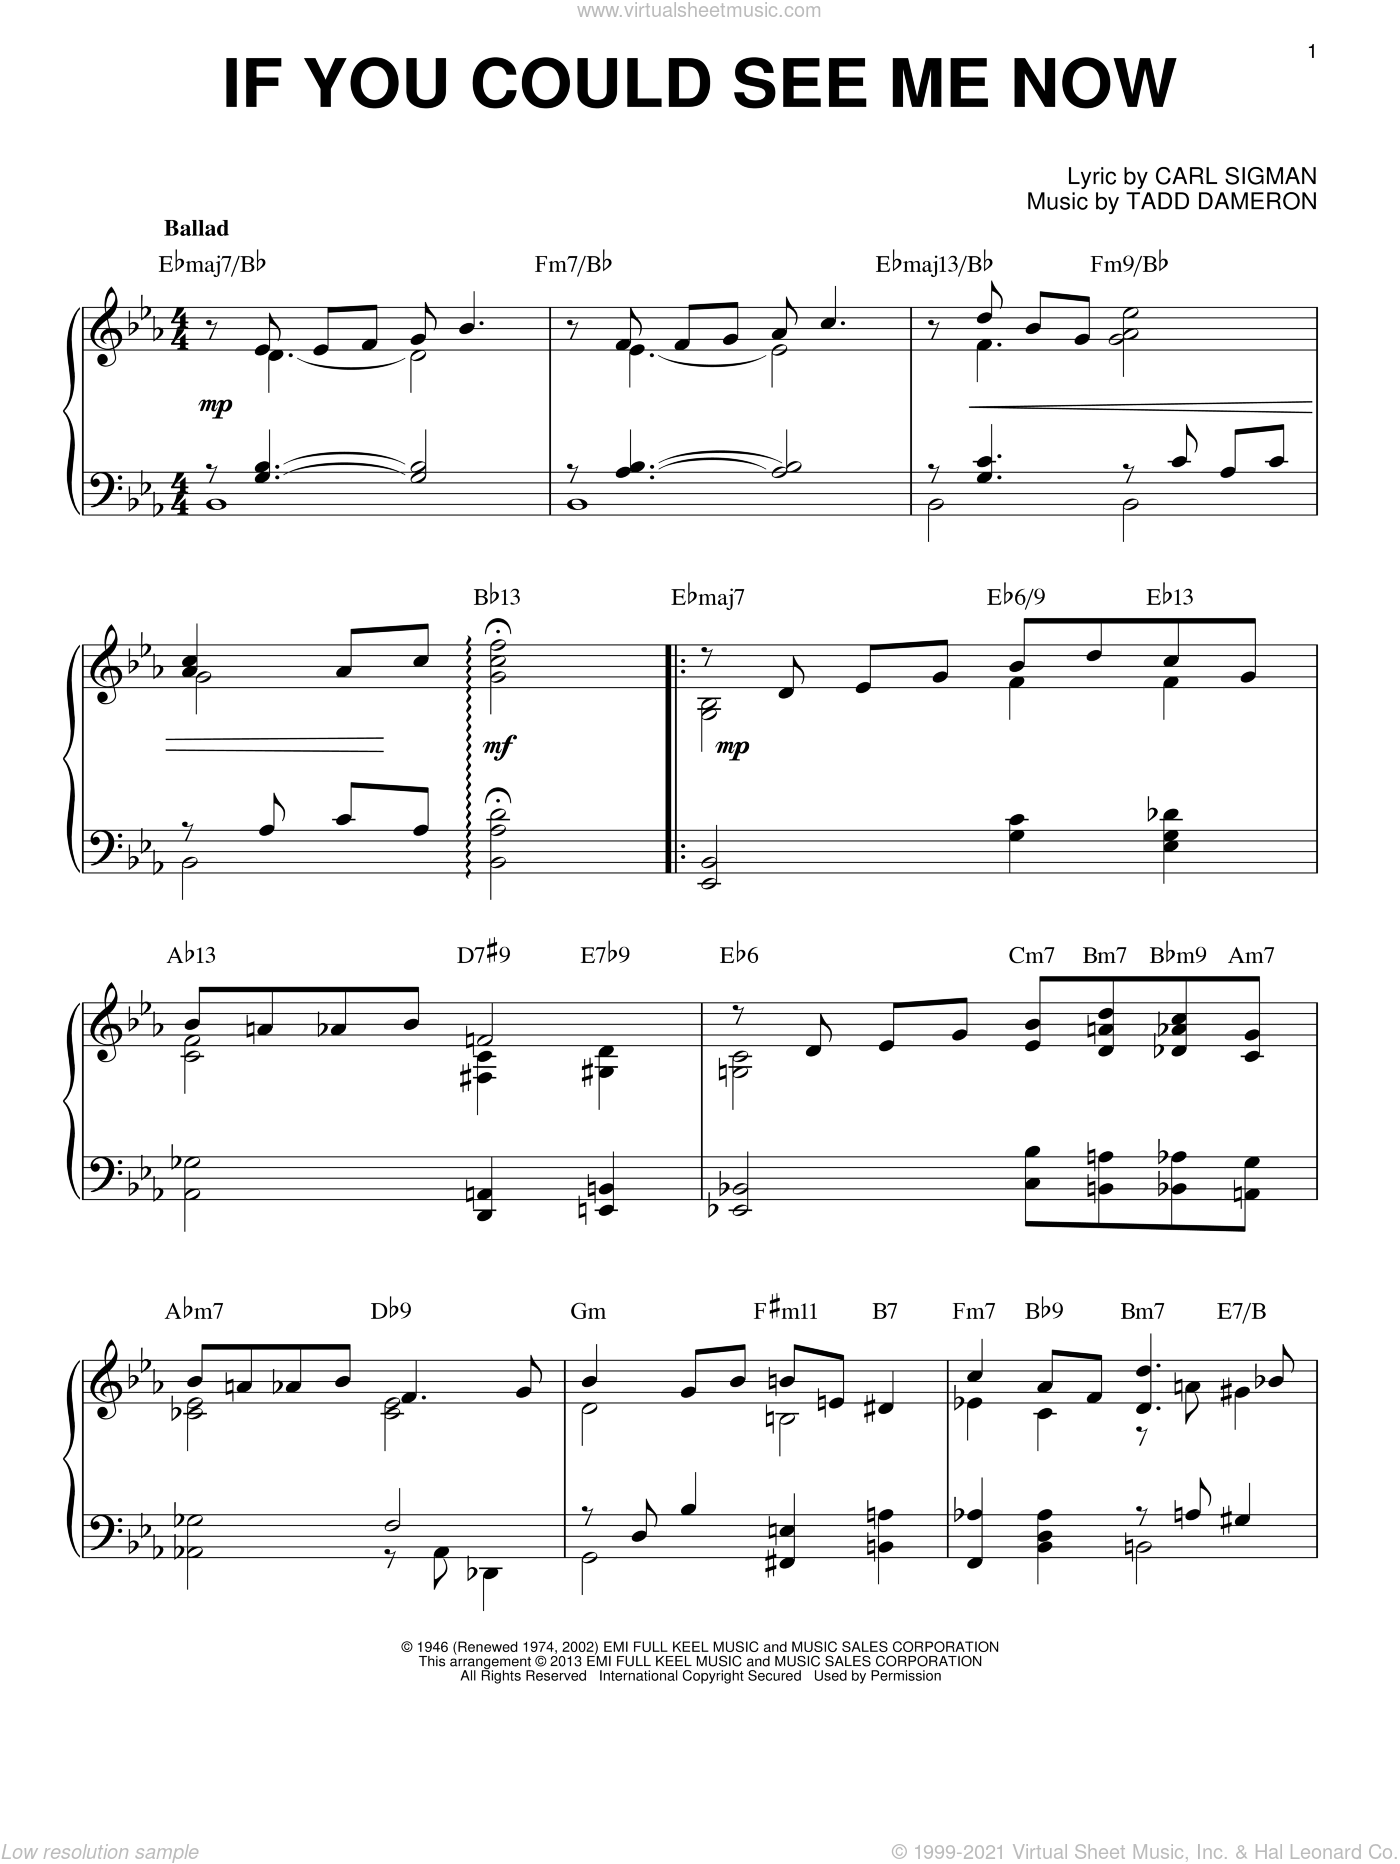 If You Could See Me Now sheet music for piano solo by Tadd Dameron and Carl Sigman, intermediate skill level